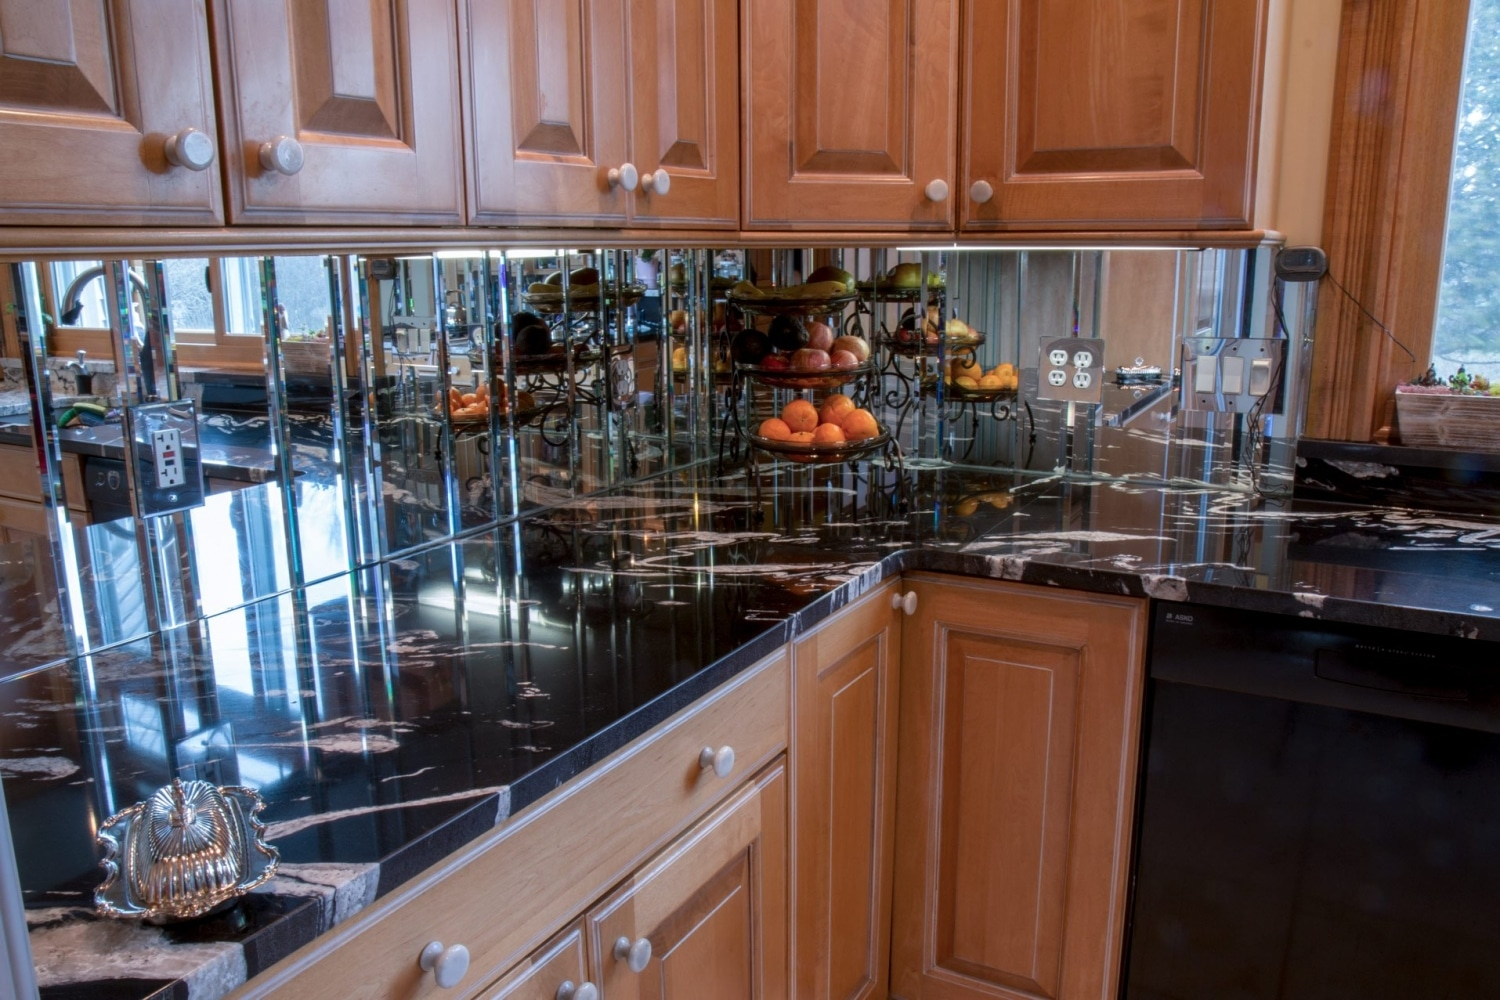 granite-copacabana-waterfall-edge-blanco-diamond-sink-countertops-3